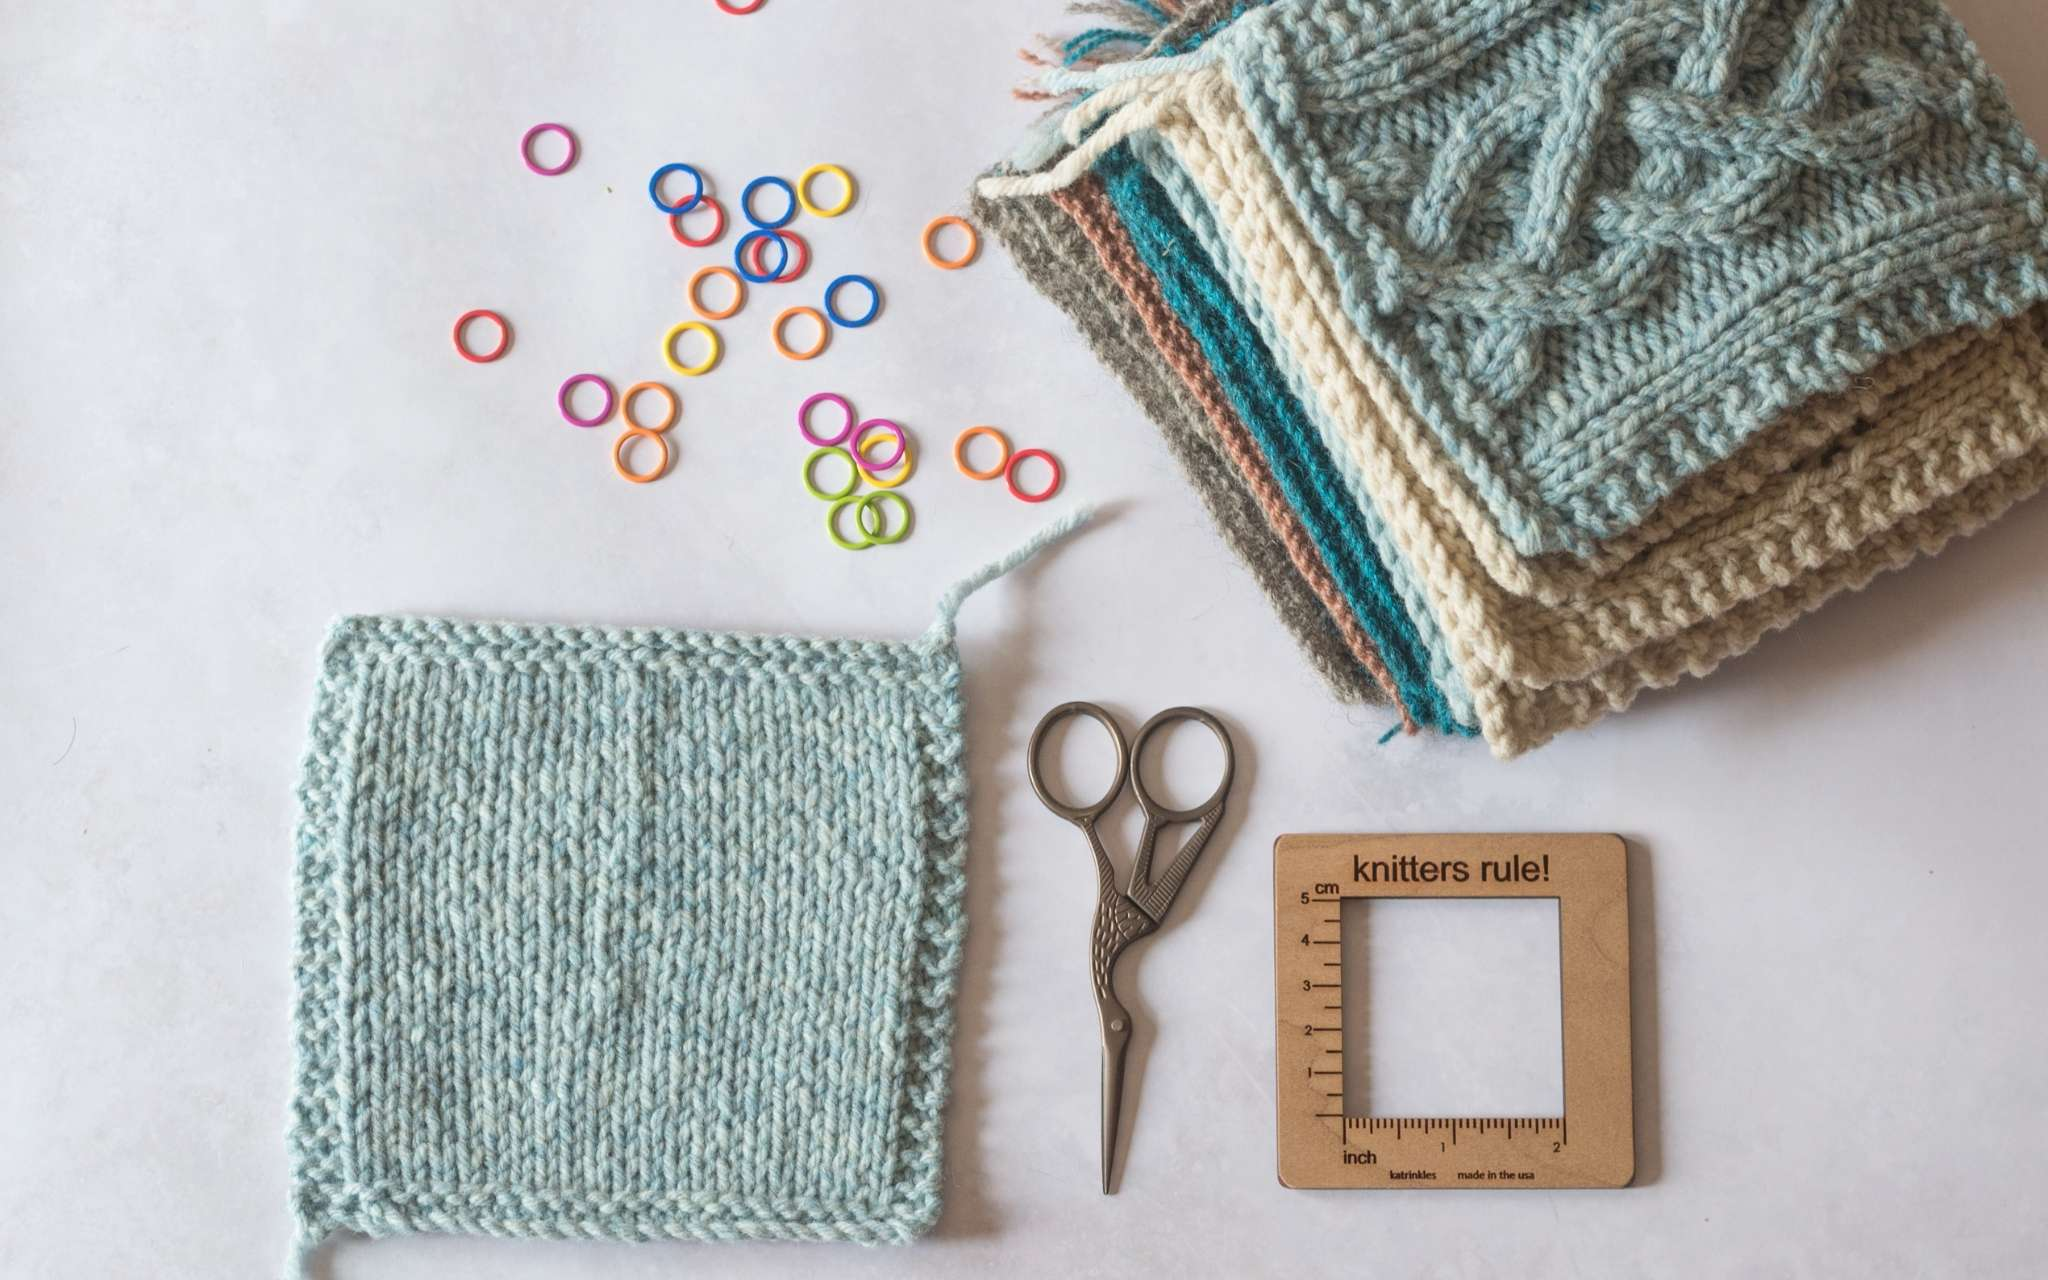 A blue stocking stitch swatch lies on a pale flat surface. Next to it is a small pair of scissors, a wooden gauge tool, coloured stitch markers and a pile of swatches.